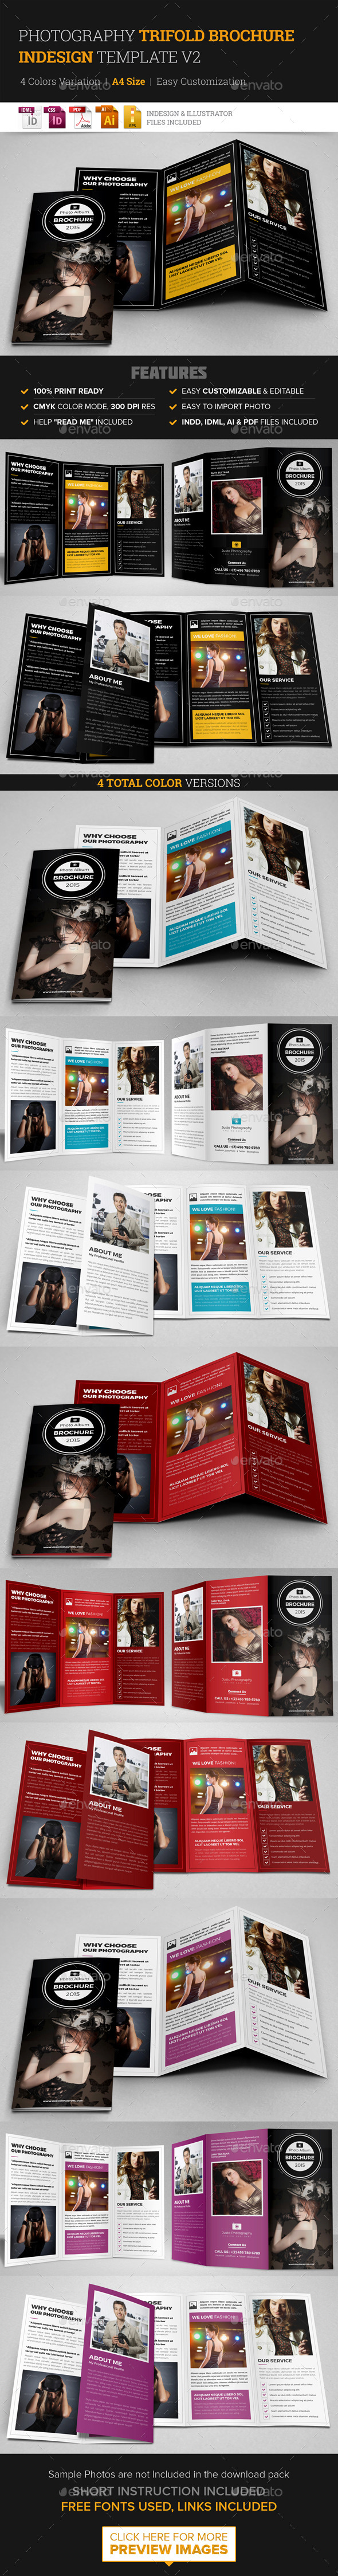 Photography Trifold Brochure Indesign Template v2  - Corporate Brochures